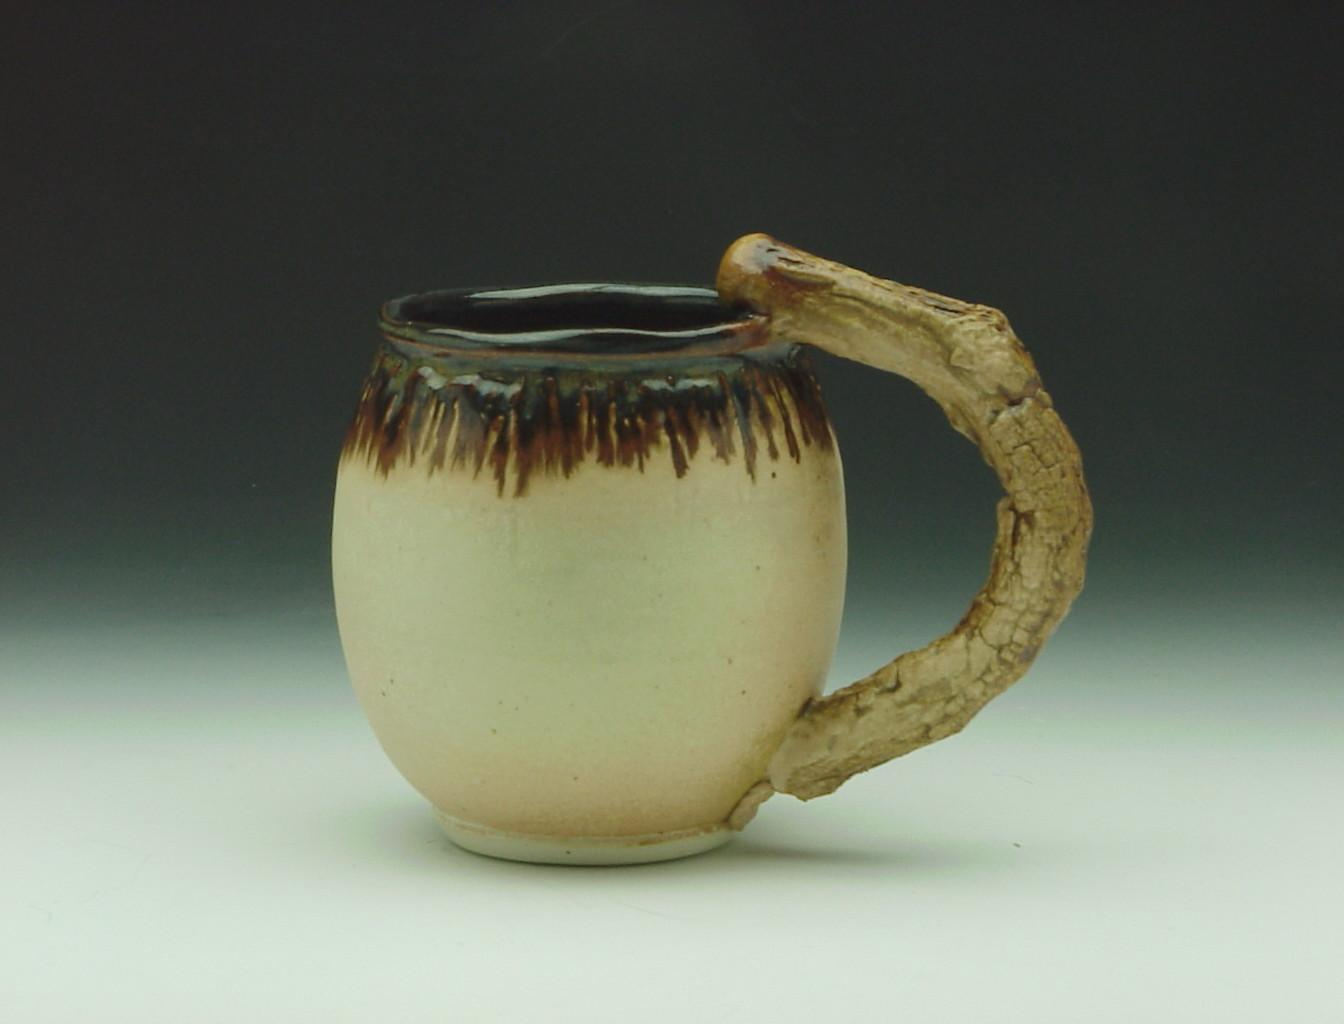 Handmade Ceramic Coffee Mugs Your Morning Cup Joe